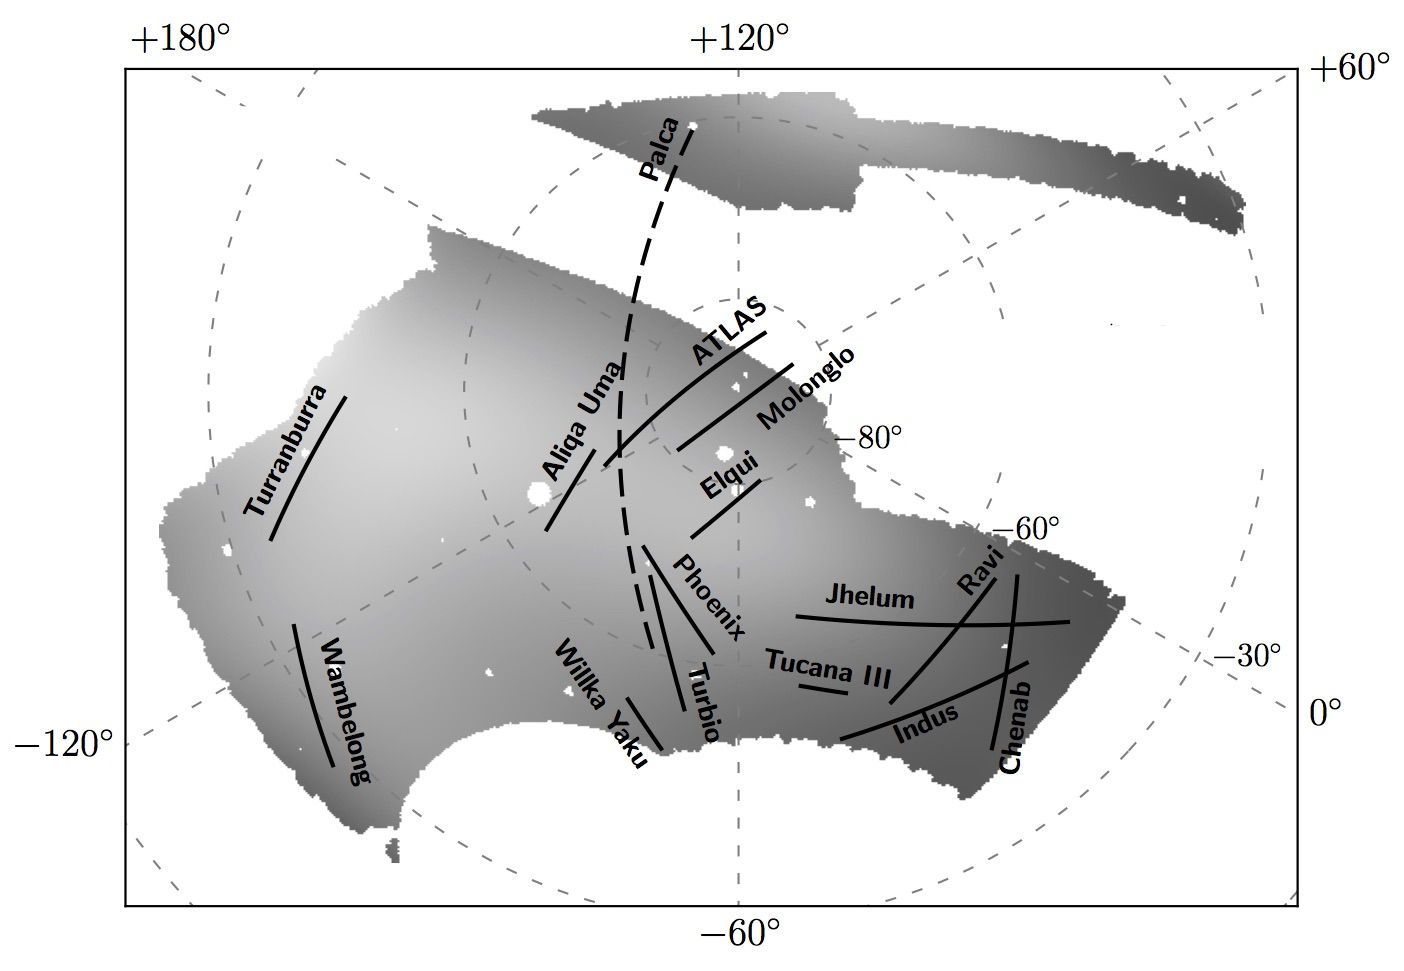 This image shows the full area of sky mapped by the Dark Energy Survey and the 11 newly discovered stellar streams. Four of the streams in this diagram — ATLAS, Molonglo, Phoenix and Tucana III – were previously known. The others were discovered using the Dark Energy Camera, one of the most powerful astronomical cameras on Earth.